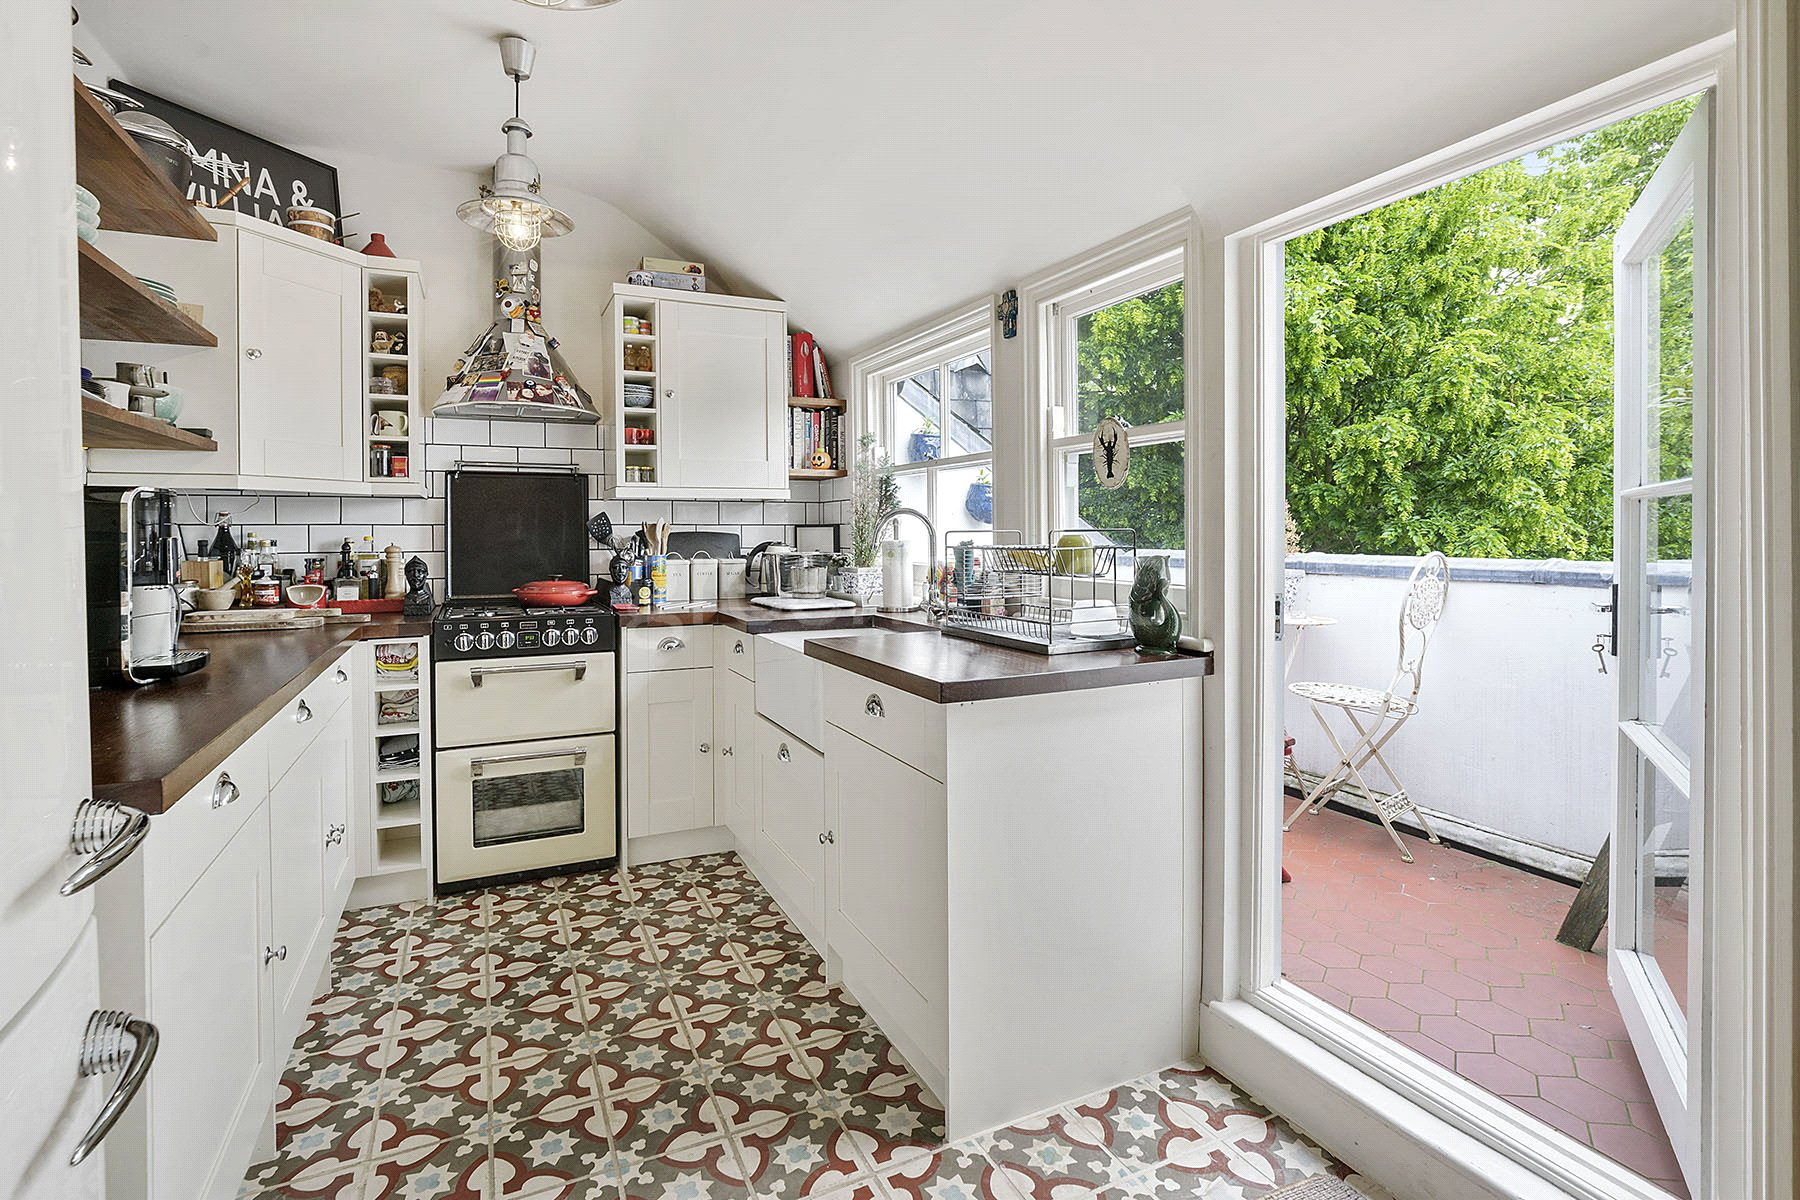 3 Bedrooms Flat for sale in Haverstock Hill, Belsize Park, London, NW3